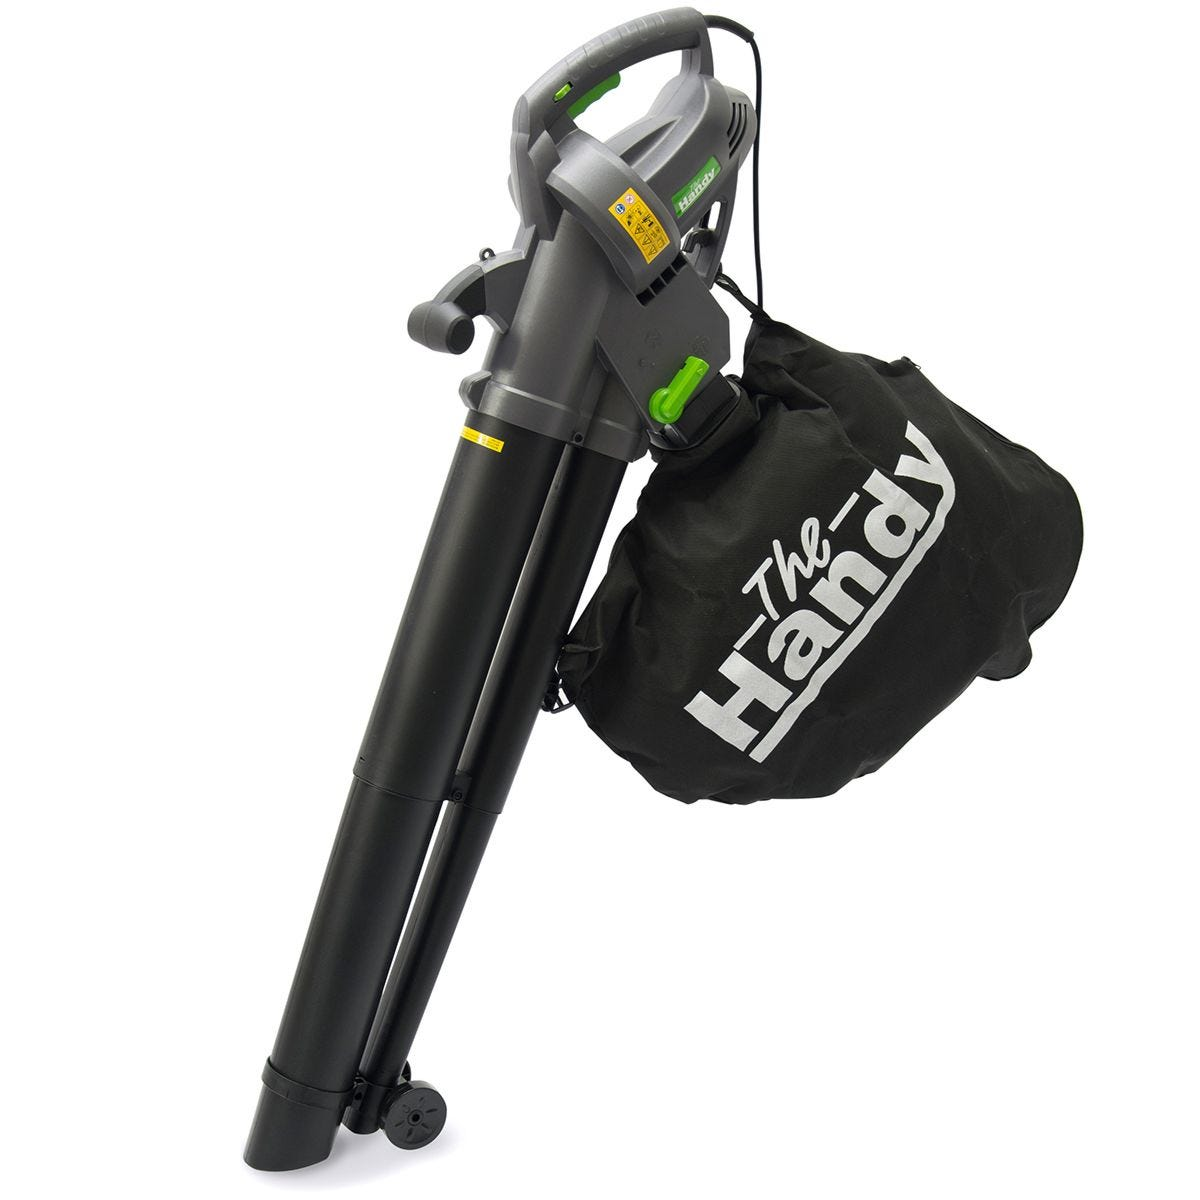 The Handy 167mph (270km/h) Variable Speed 3000w Corded Garden Blower & Vacuum